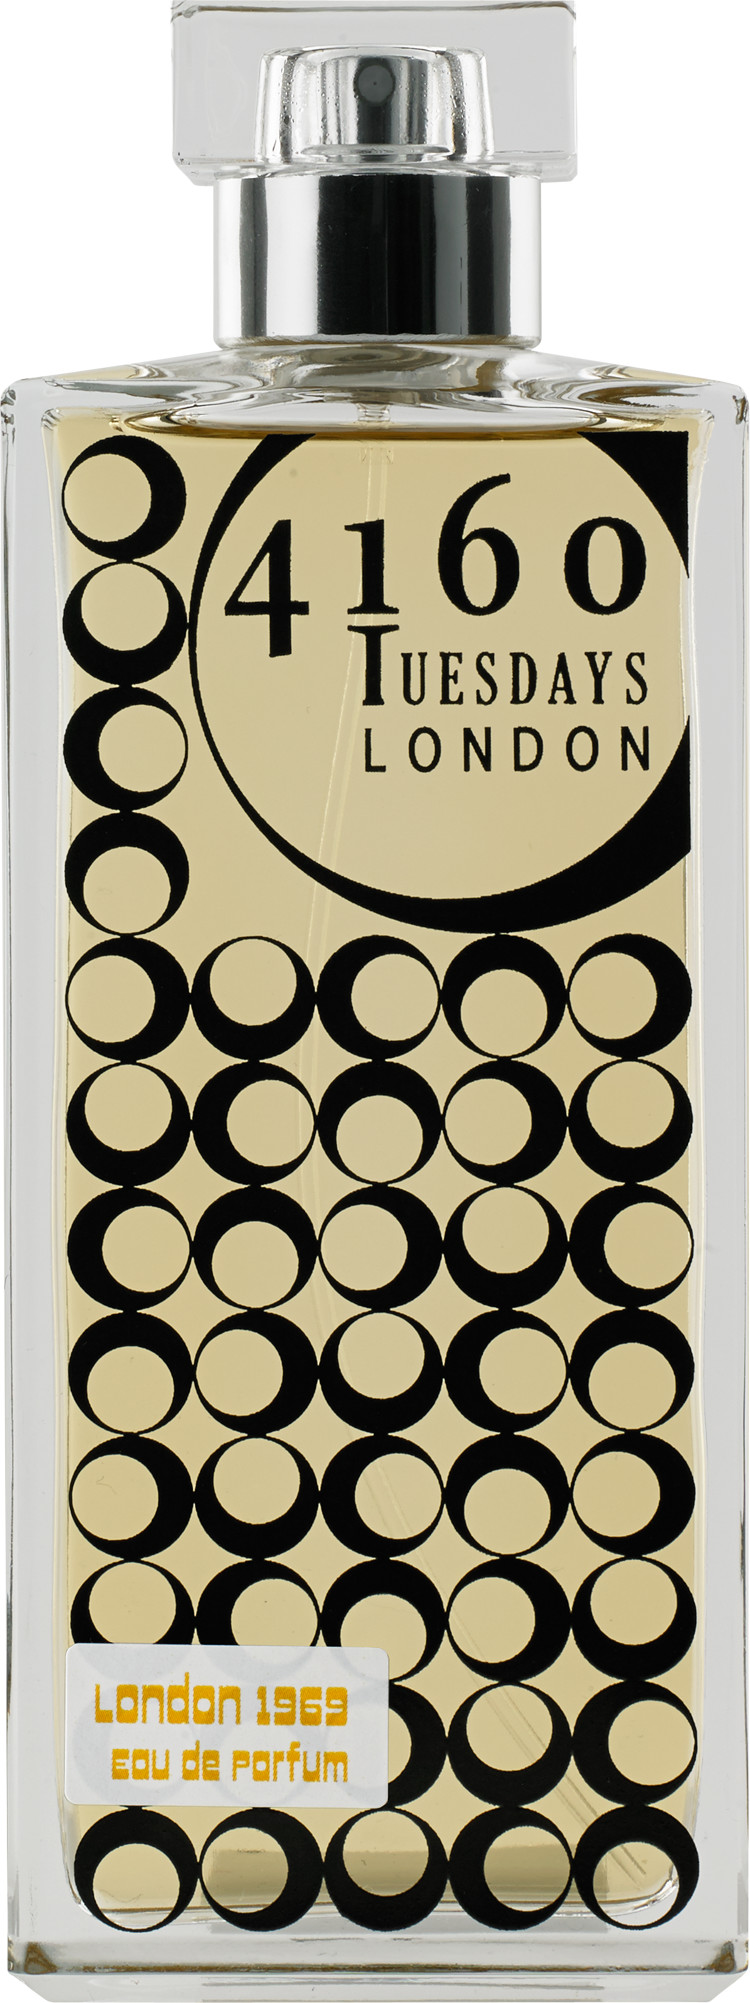 Fragrance 4160 Tuesdays London 1969 Eau de Parfum